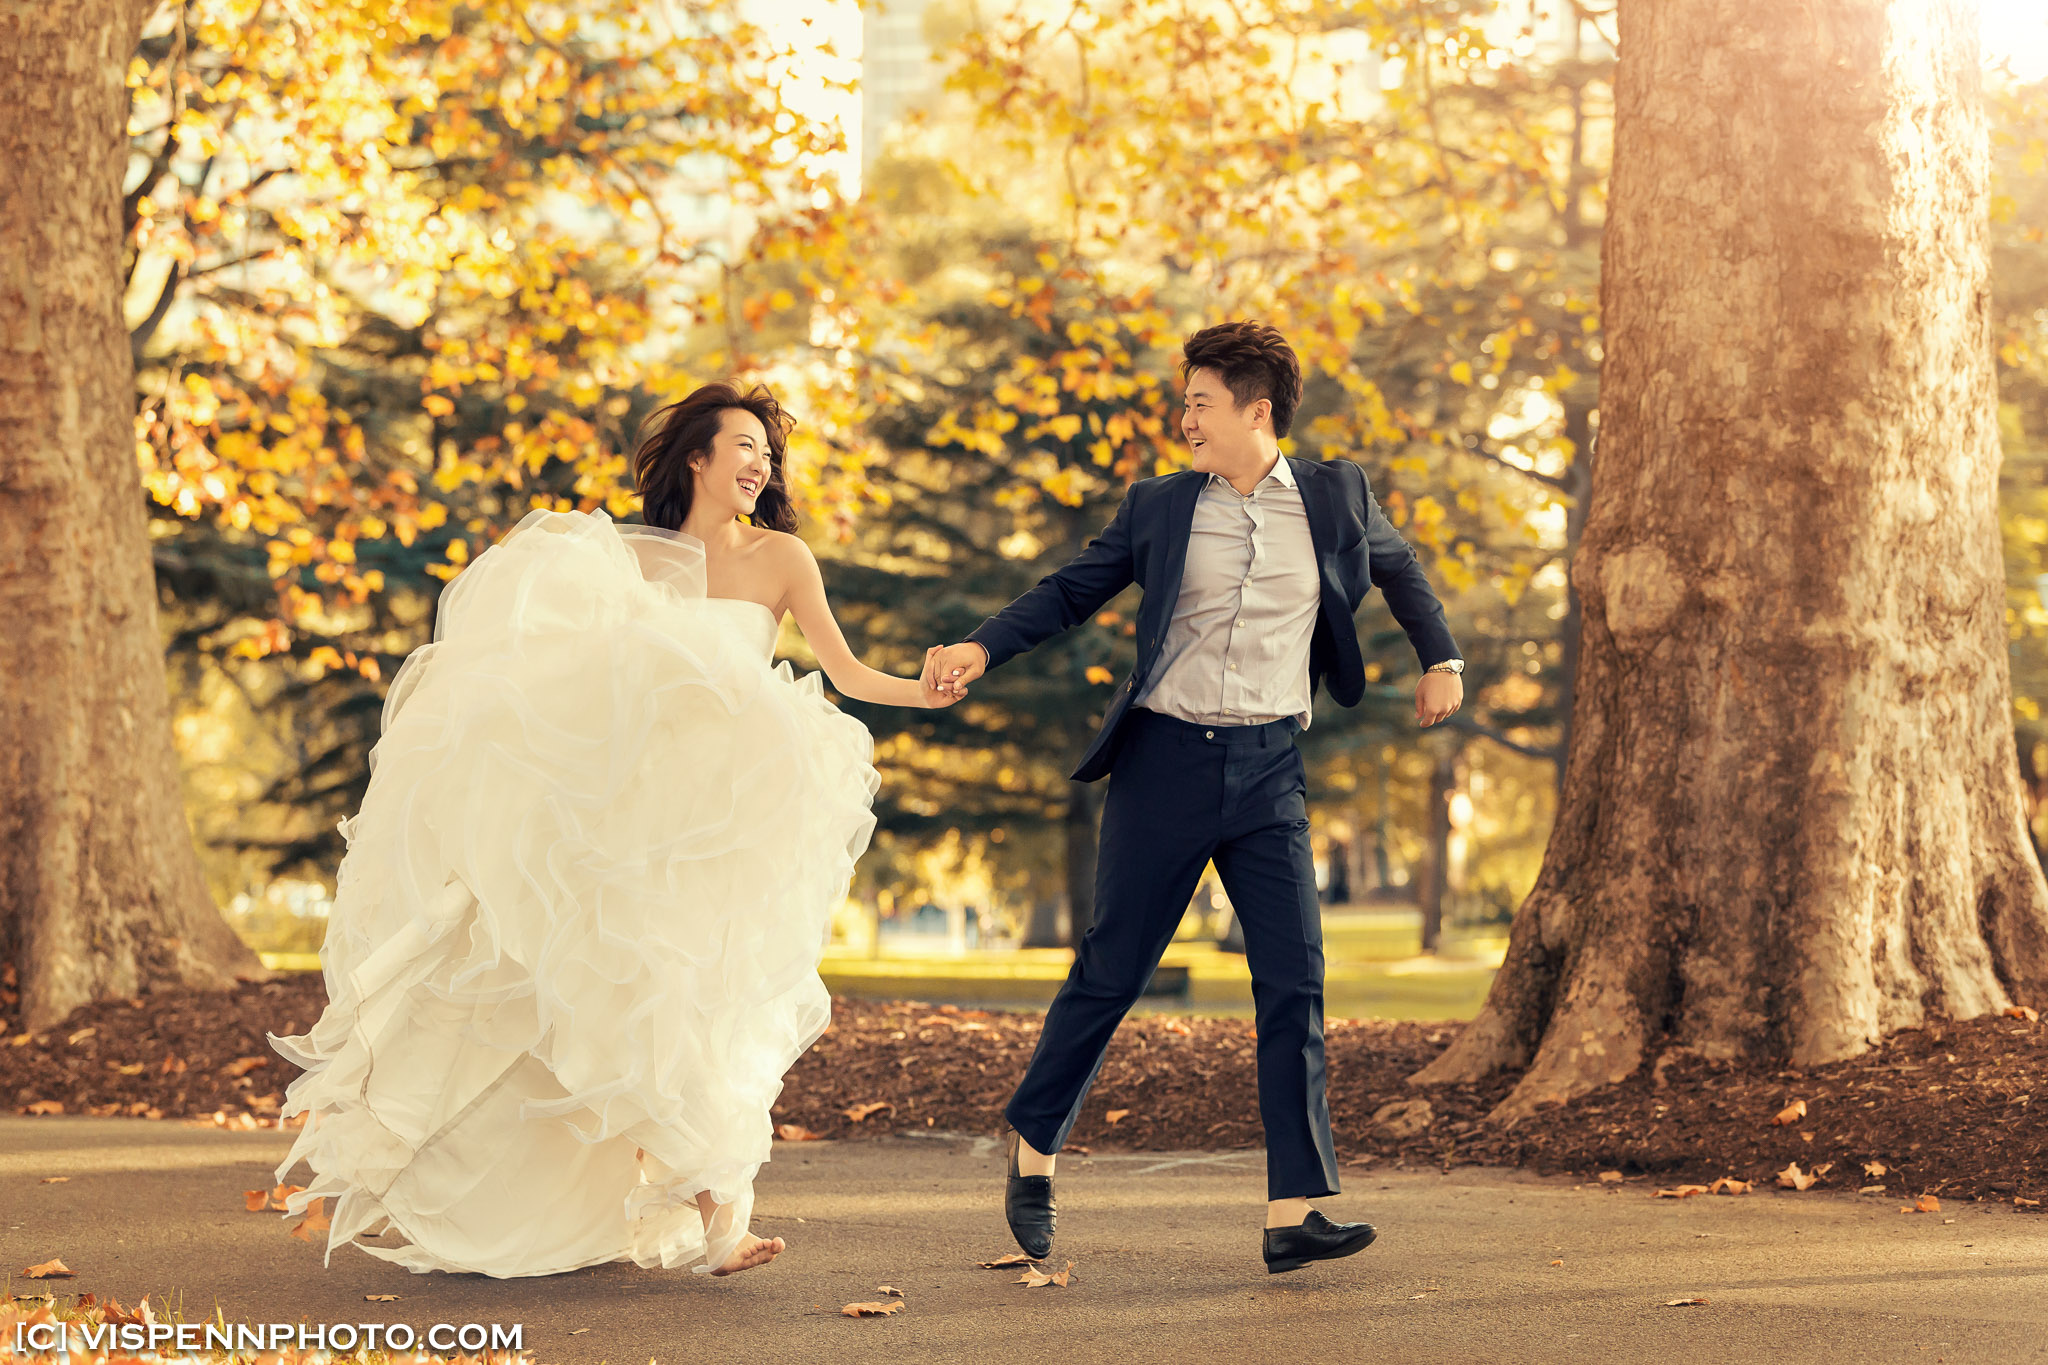 PRE WEDDING Photography Melbourne 5D1 3003